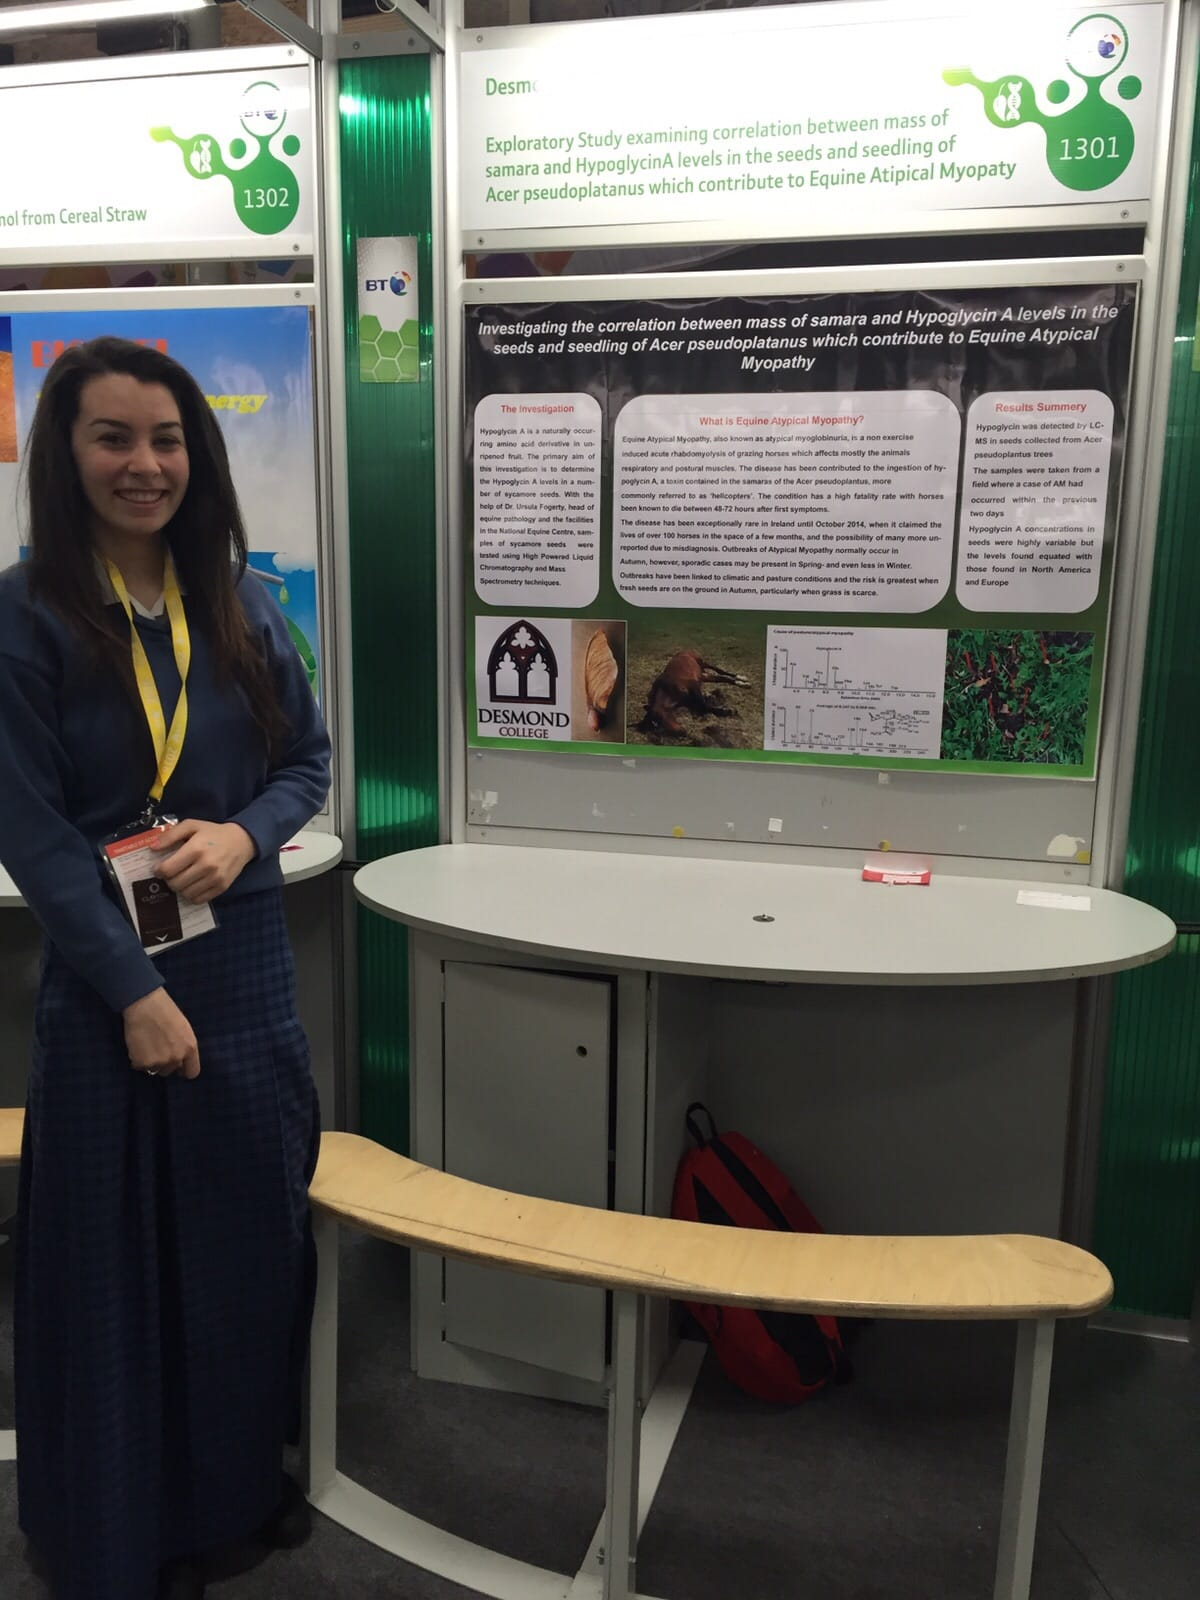 2016 January : Stacey Flynn and her project investigating the Hypoglycin A levels in sycamore seeds and their effect on Equine Atypical Myopathy